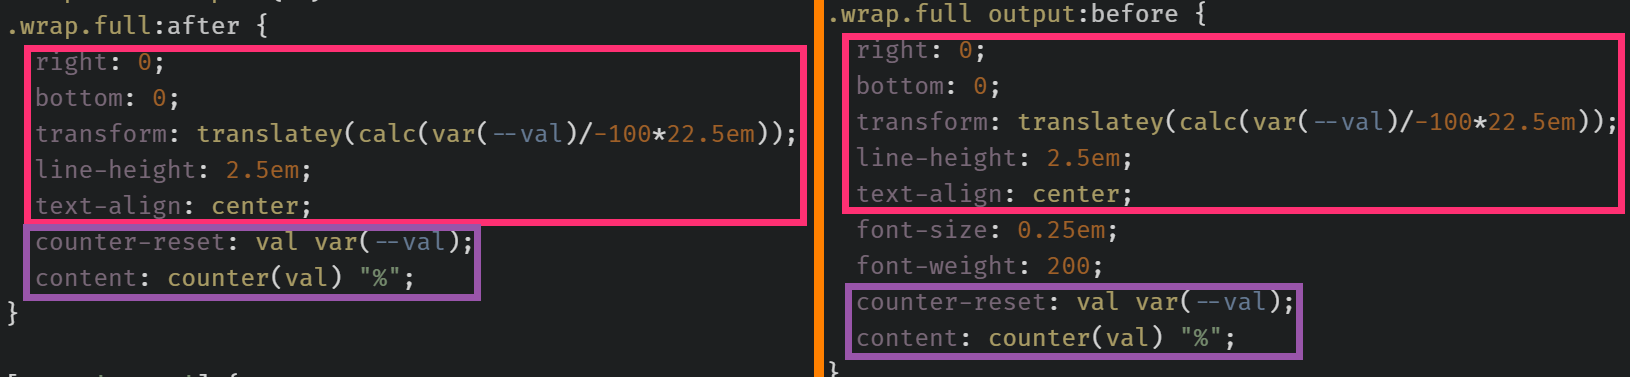 Screenshot collage. Shows the styles on the .wrap.full:after (left) and highlights how all of them can be found afterwards on the .wrap.full output:before (right), in addition to those bringing the font down to the size and weight it has on the wrapper.